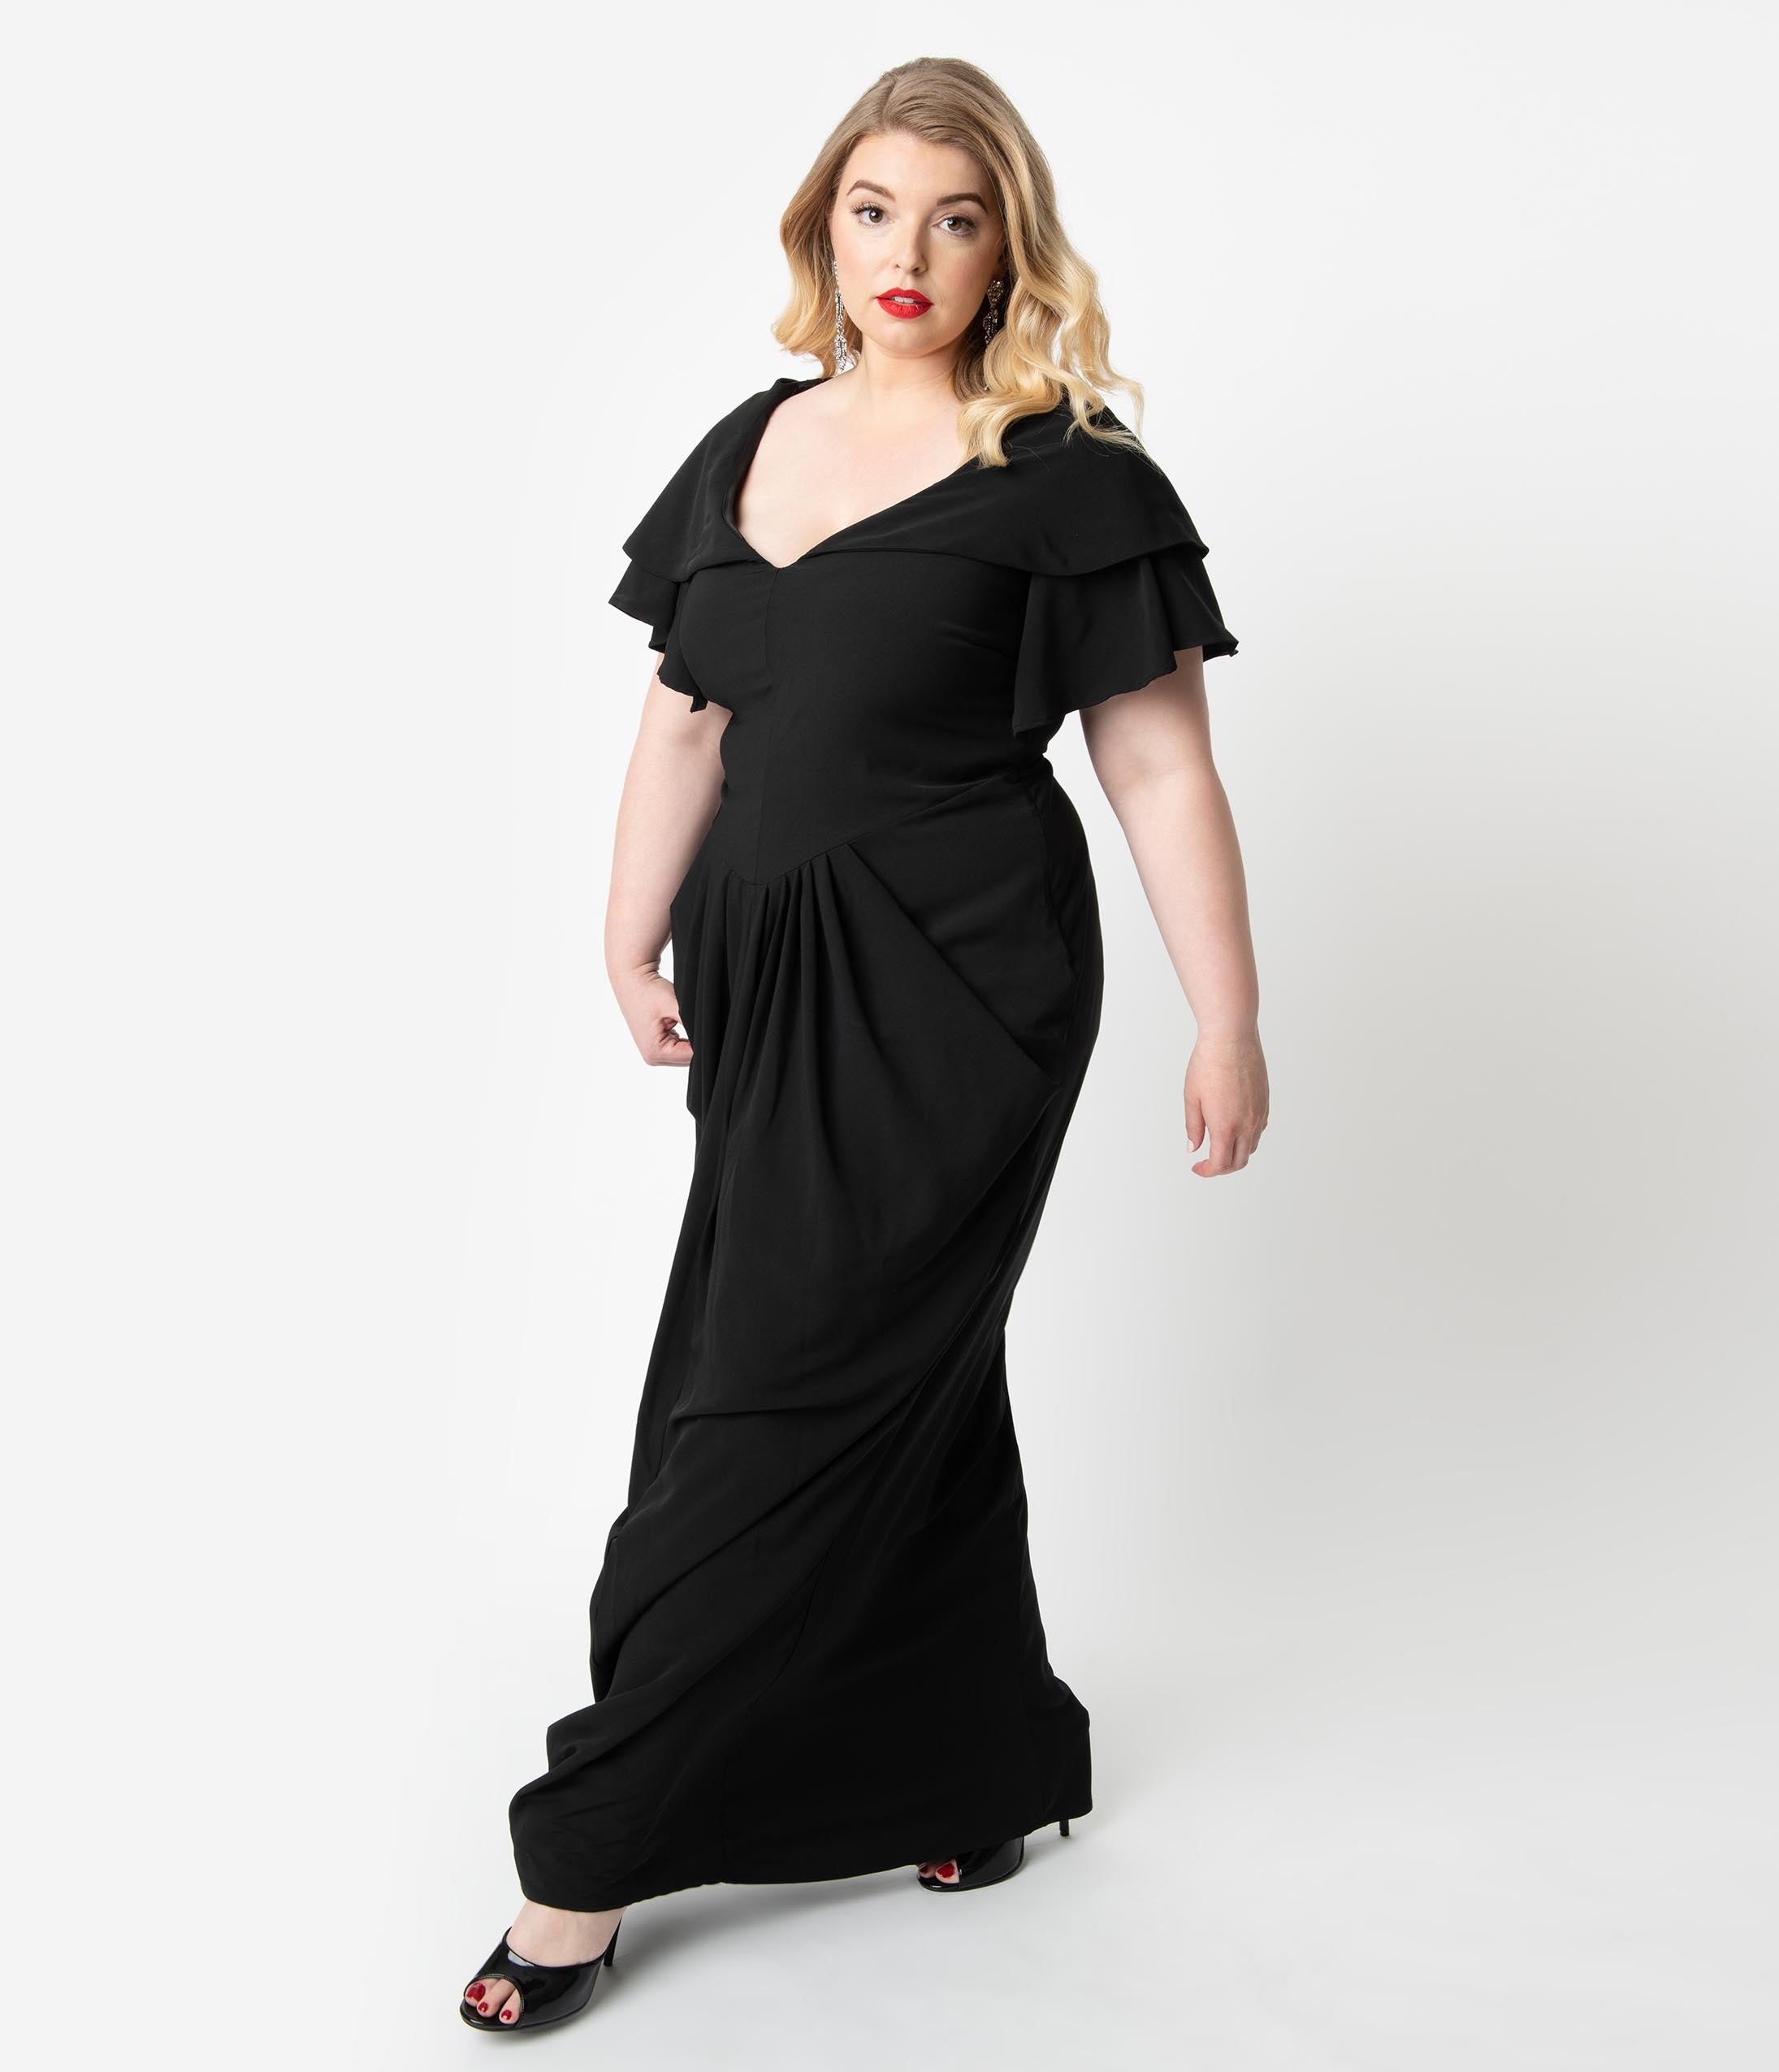 1940s Clothing Micheline Pitt For Unique Vintage Plus Size 1940S Style Black Zhora Hooded Gown $148.00 AT vintagedancer.com